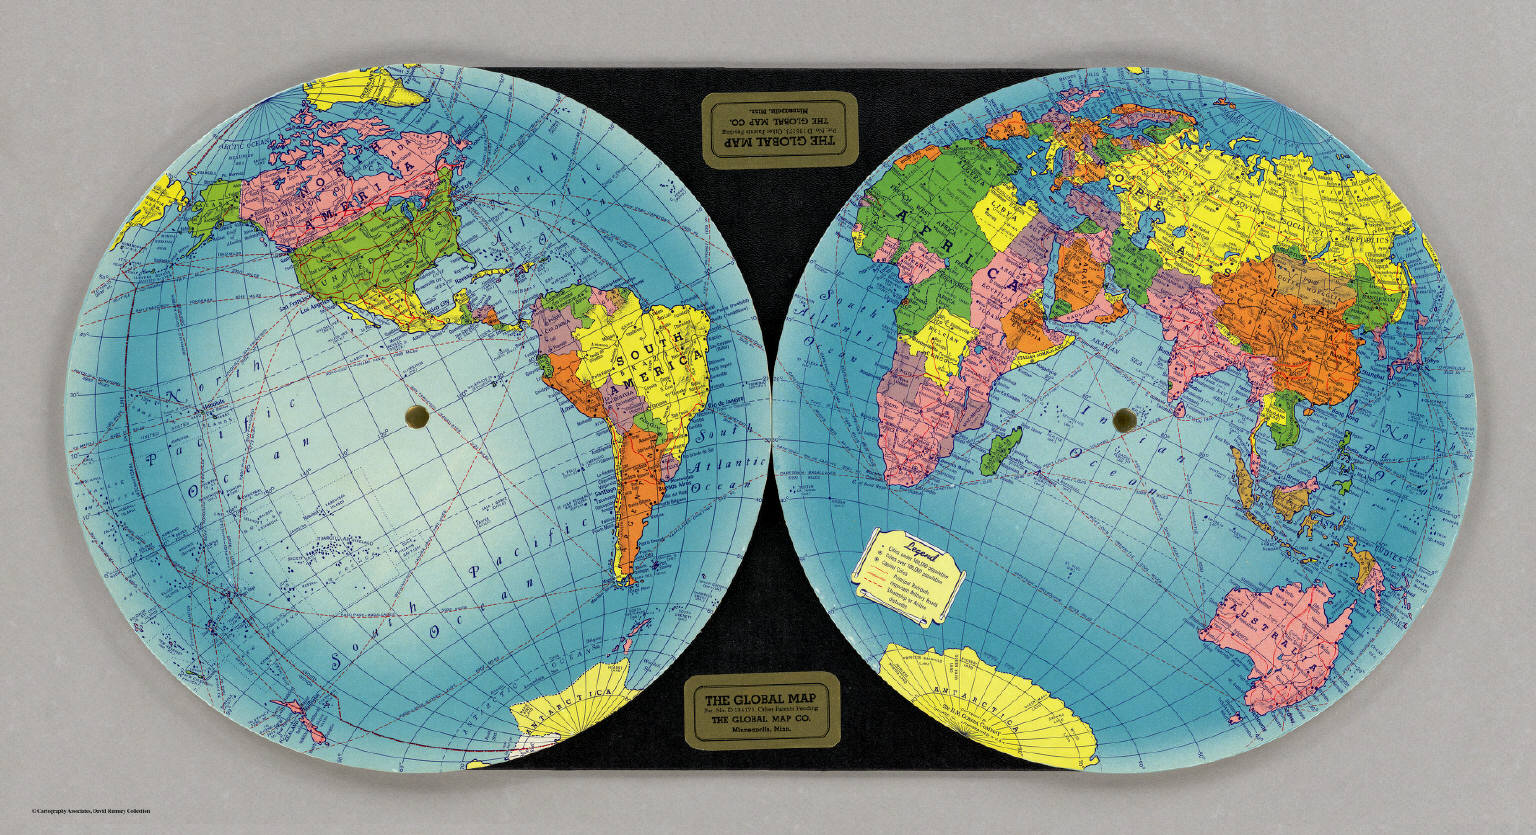 The Global Map    Global Map Company   1940 Global Map Company   1940